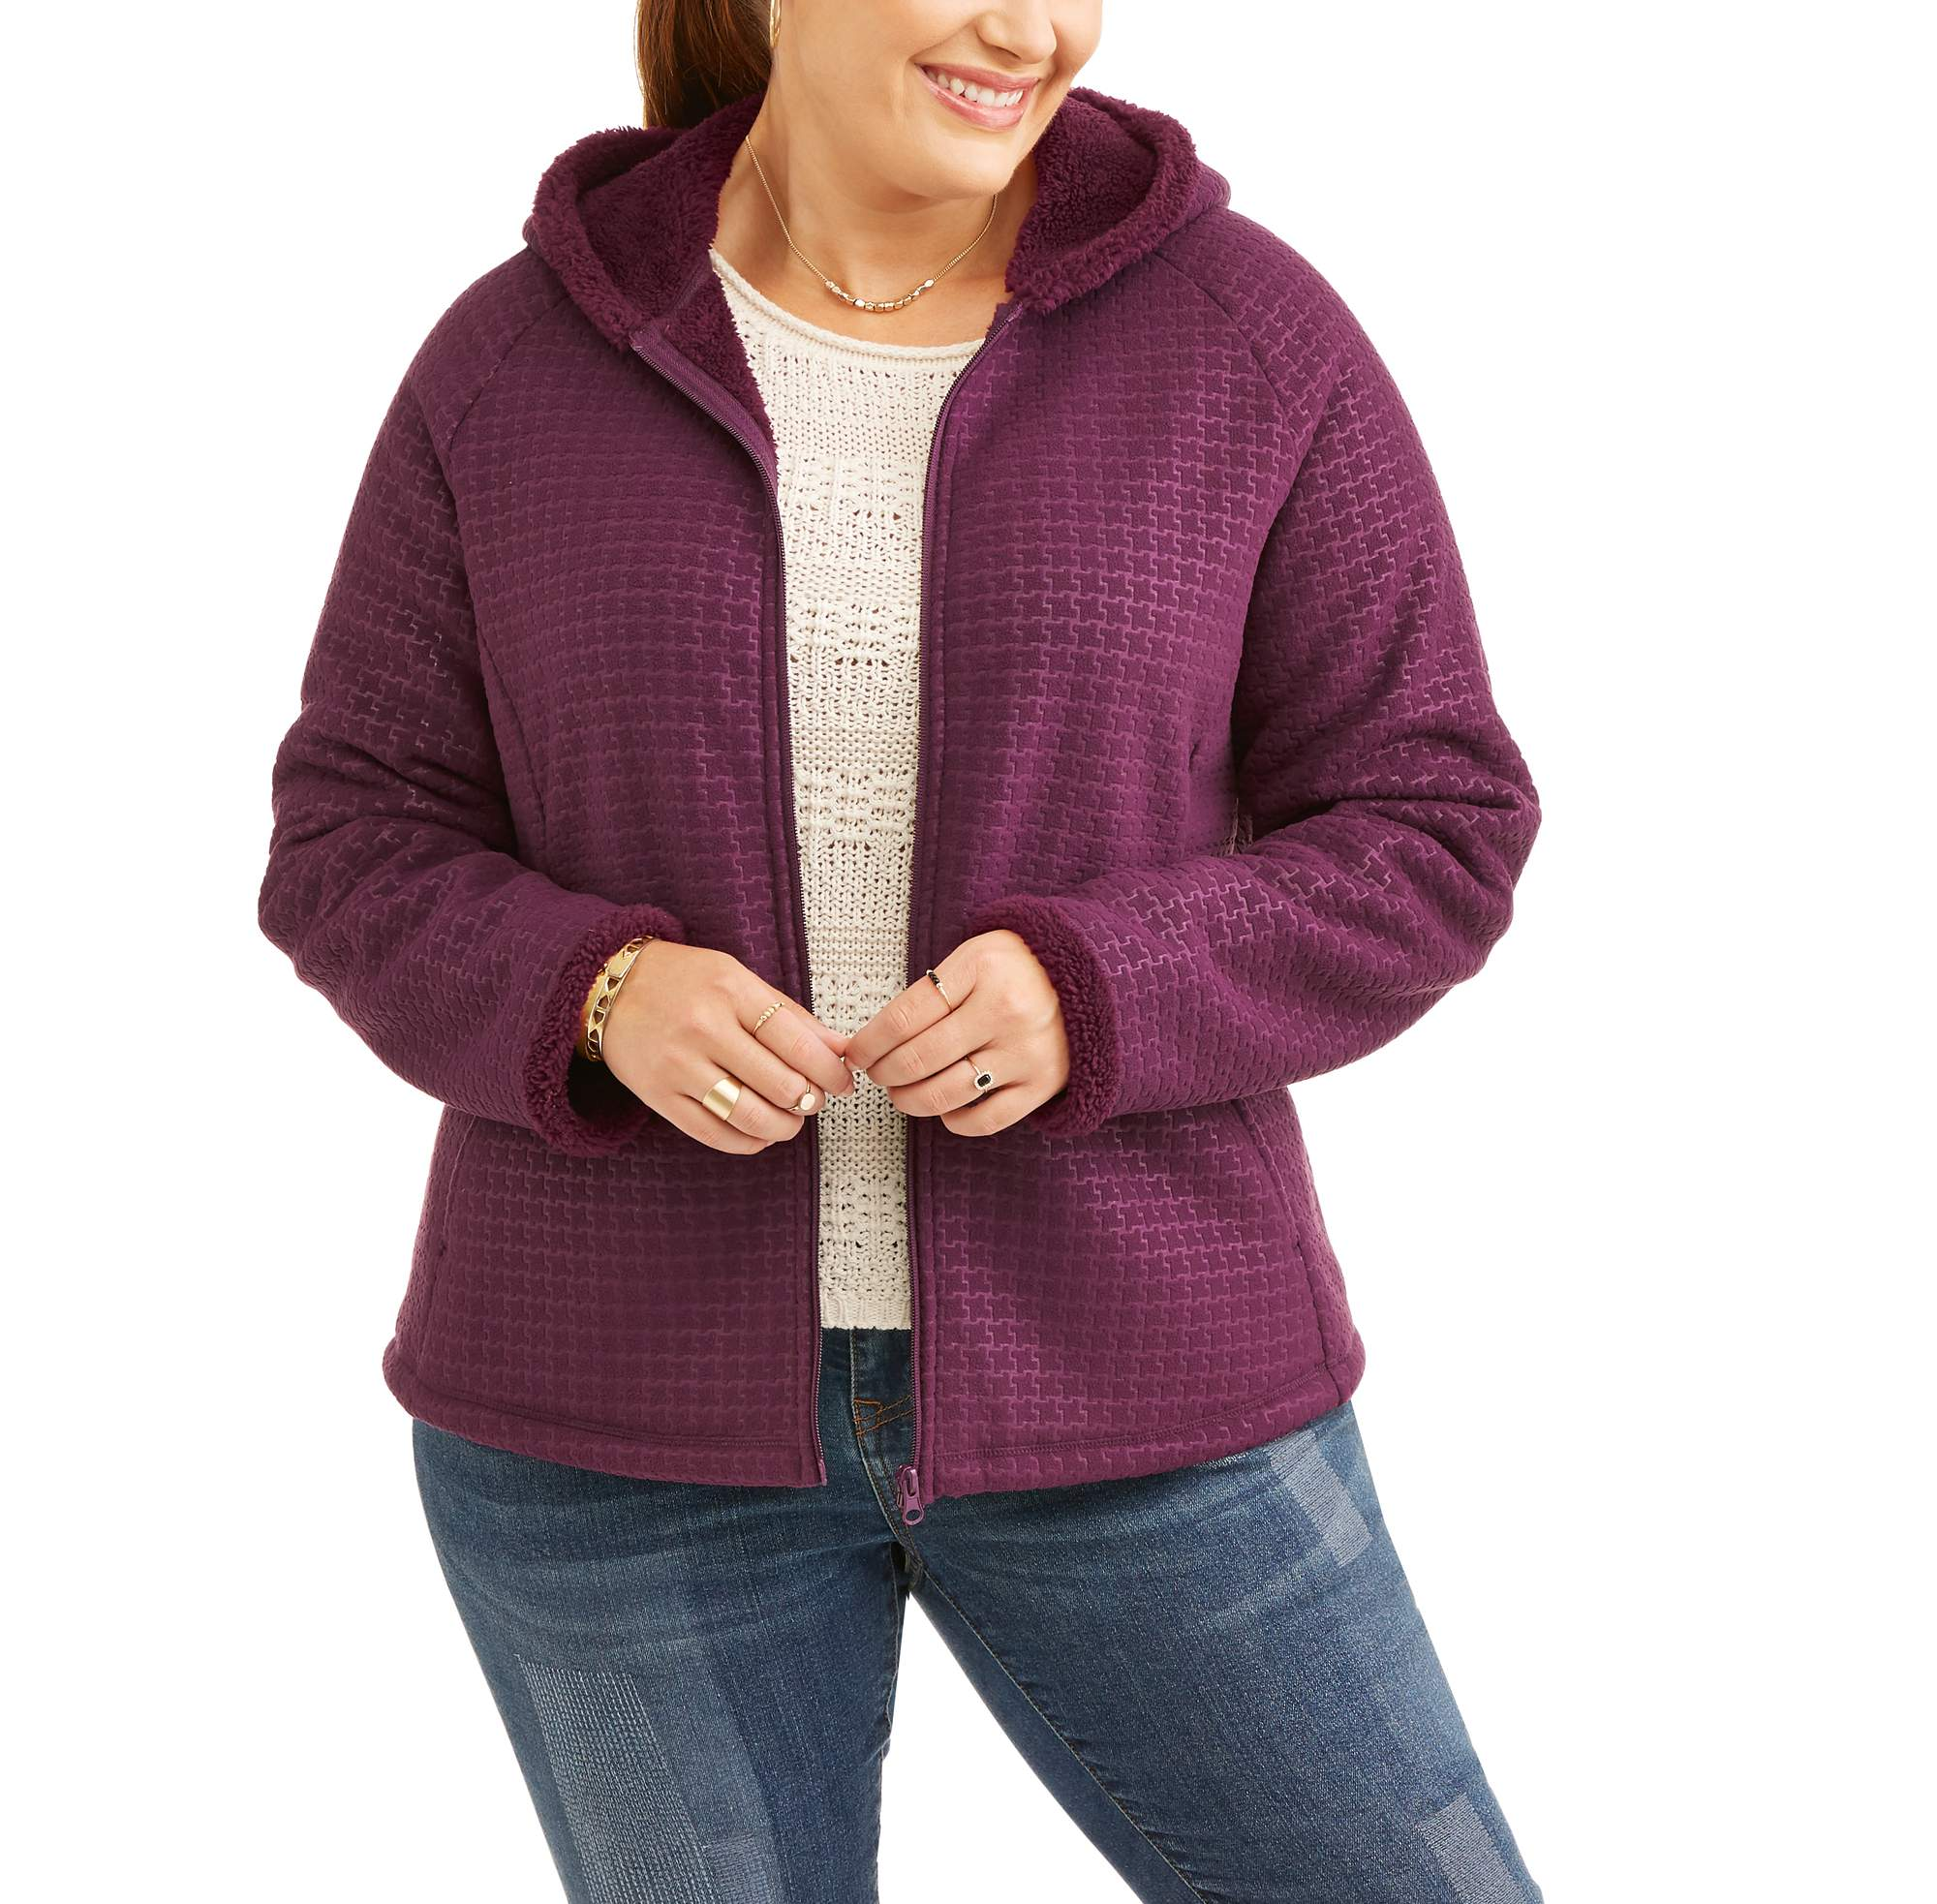 Faded Glory Women's Plus-Size Microfleece Hoodie With Cozy Sherpa Lining